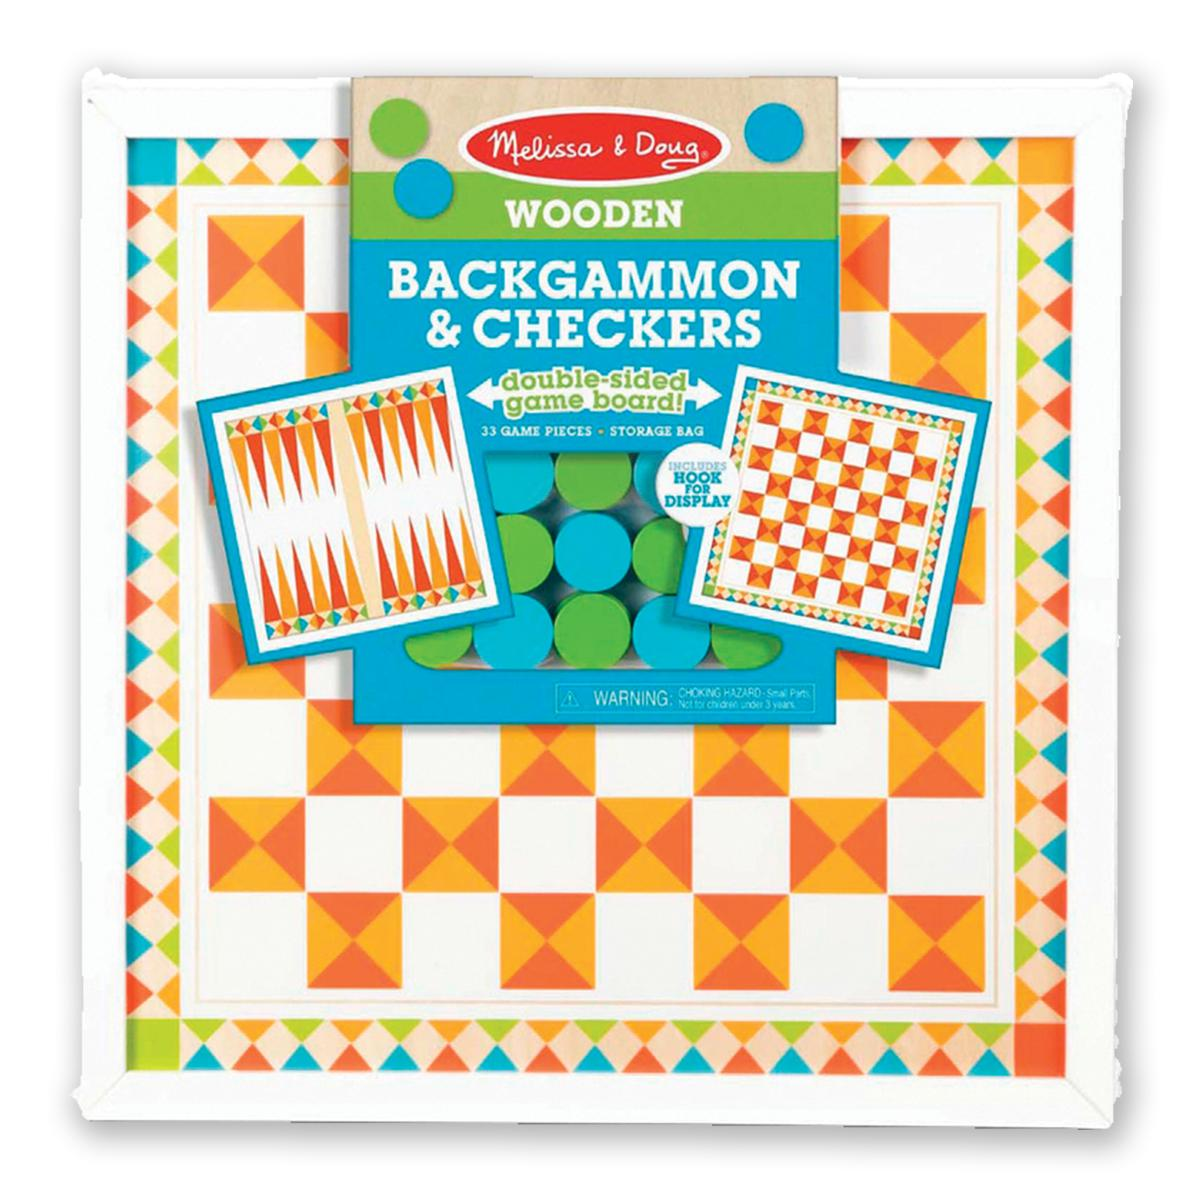 Wooden Backgammon & Checkers